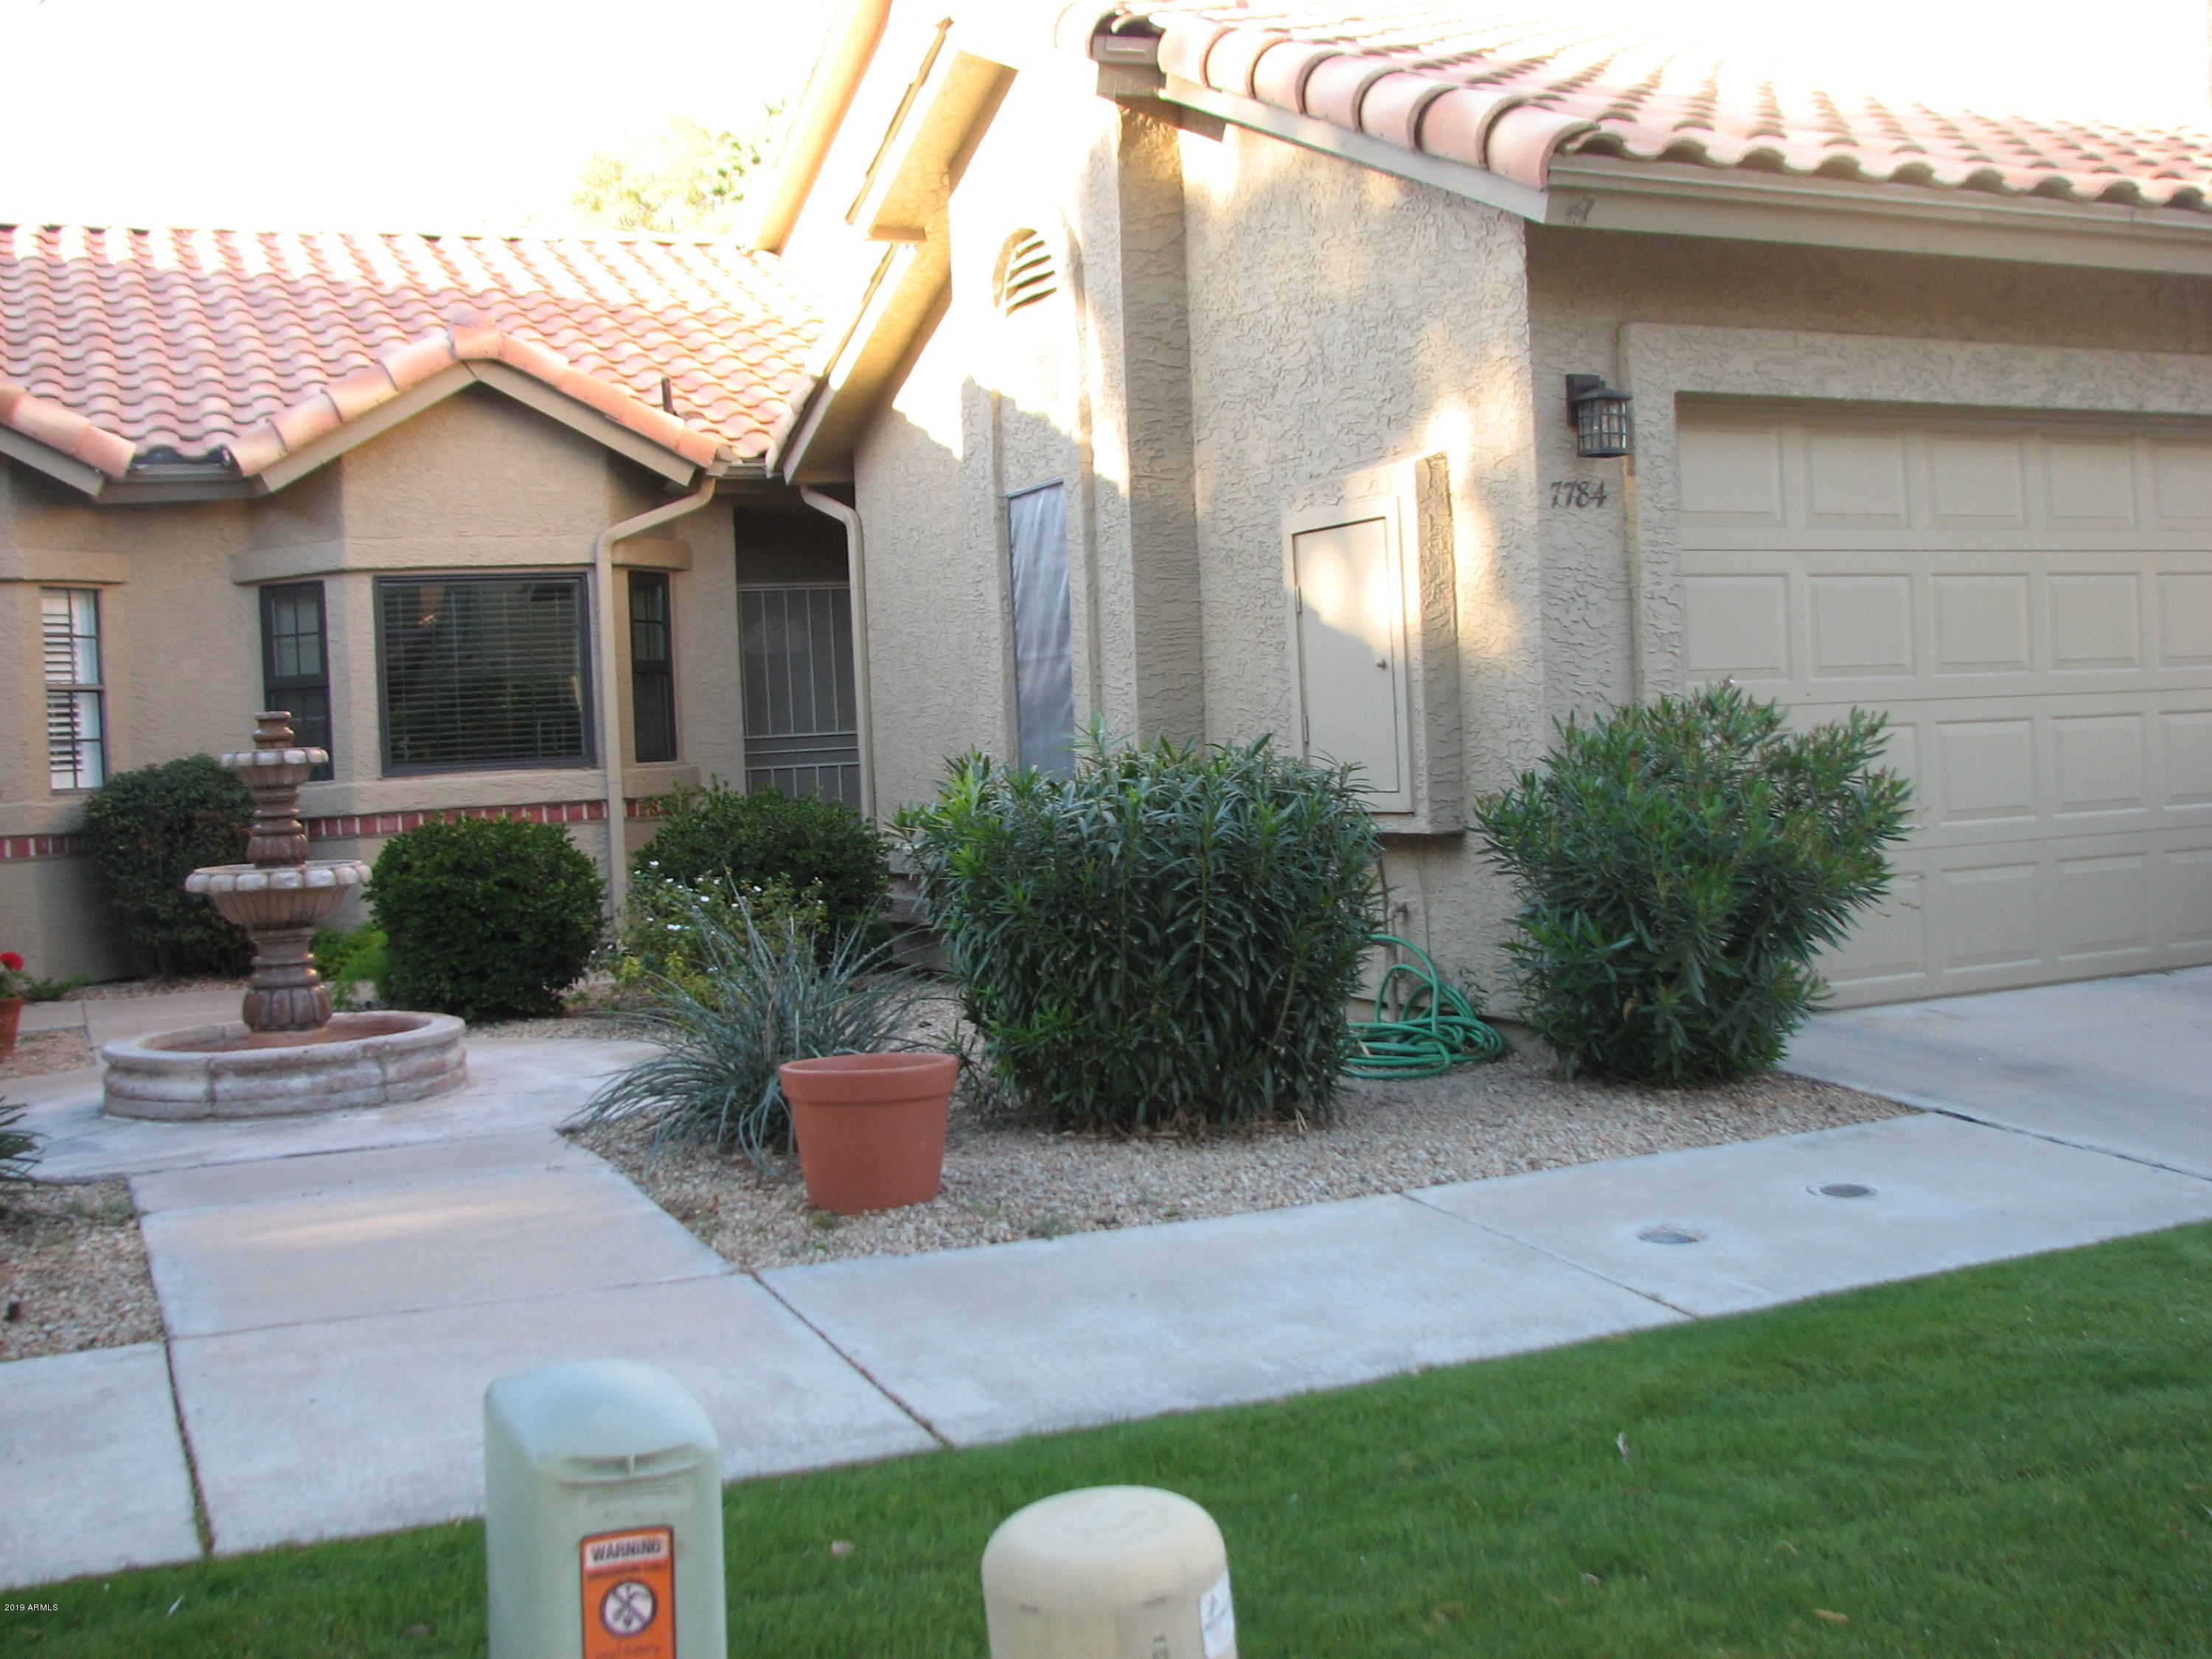 7784 E PEPPER TREE Lane, Scottsdale, Arizona image 1